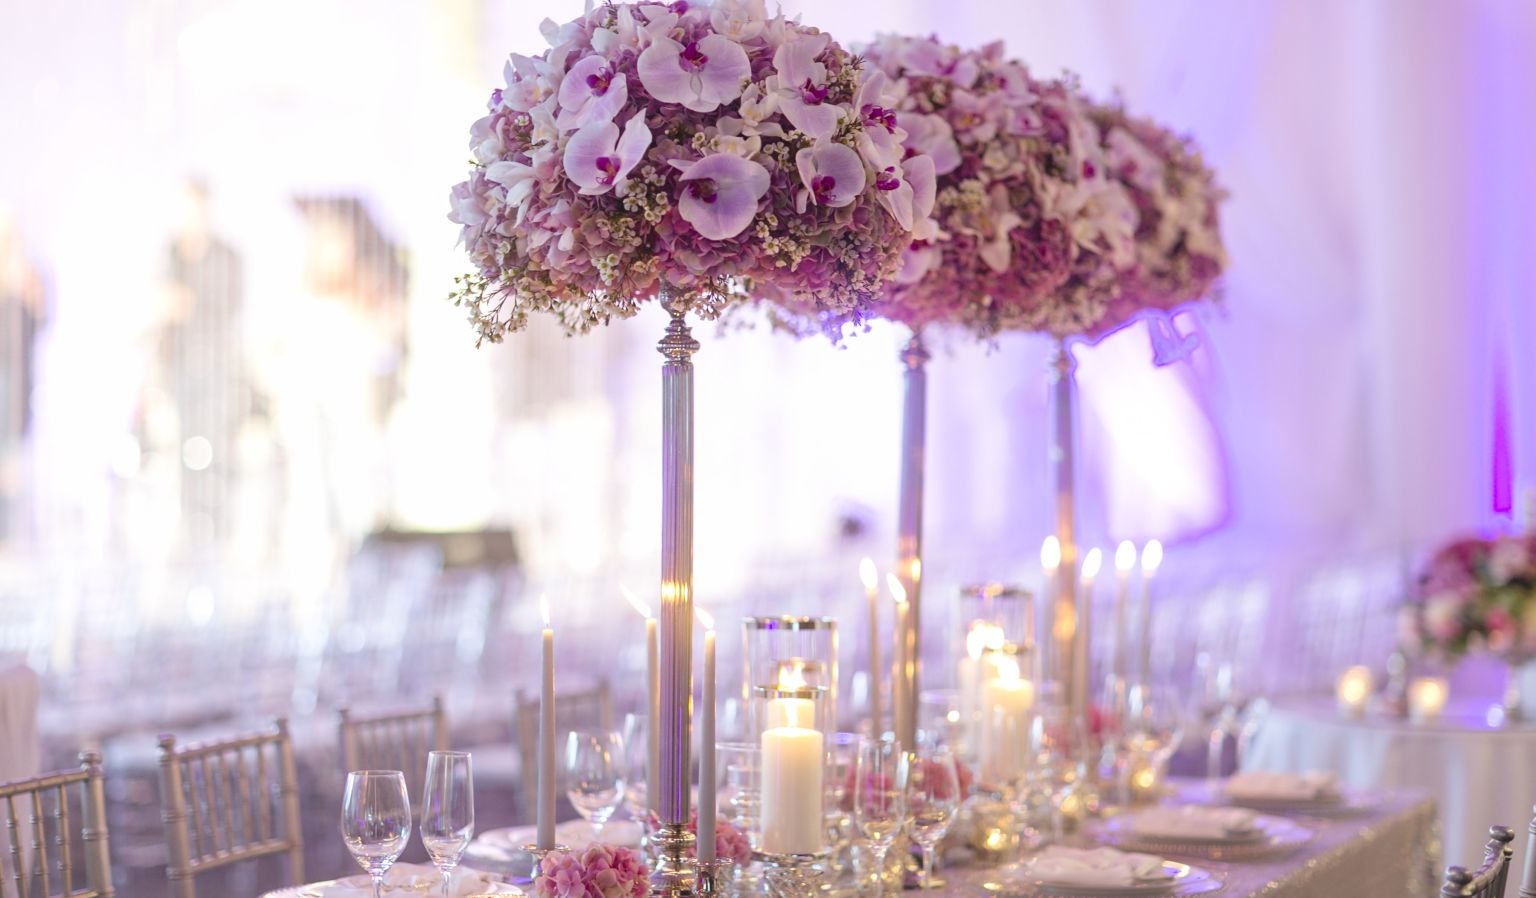 hotel interior wedding reception with flowers, candles